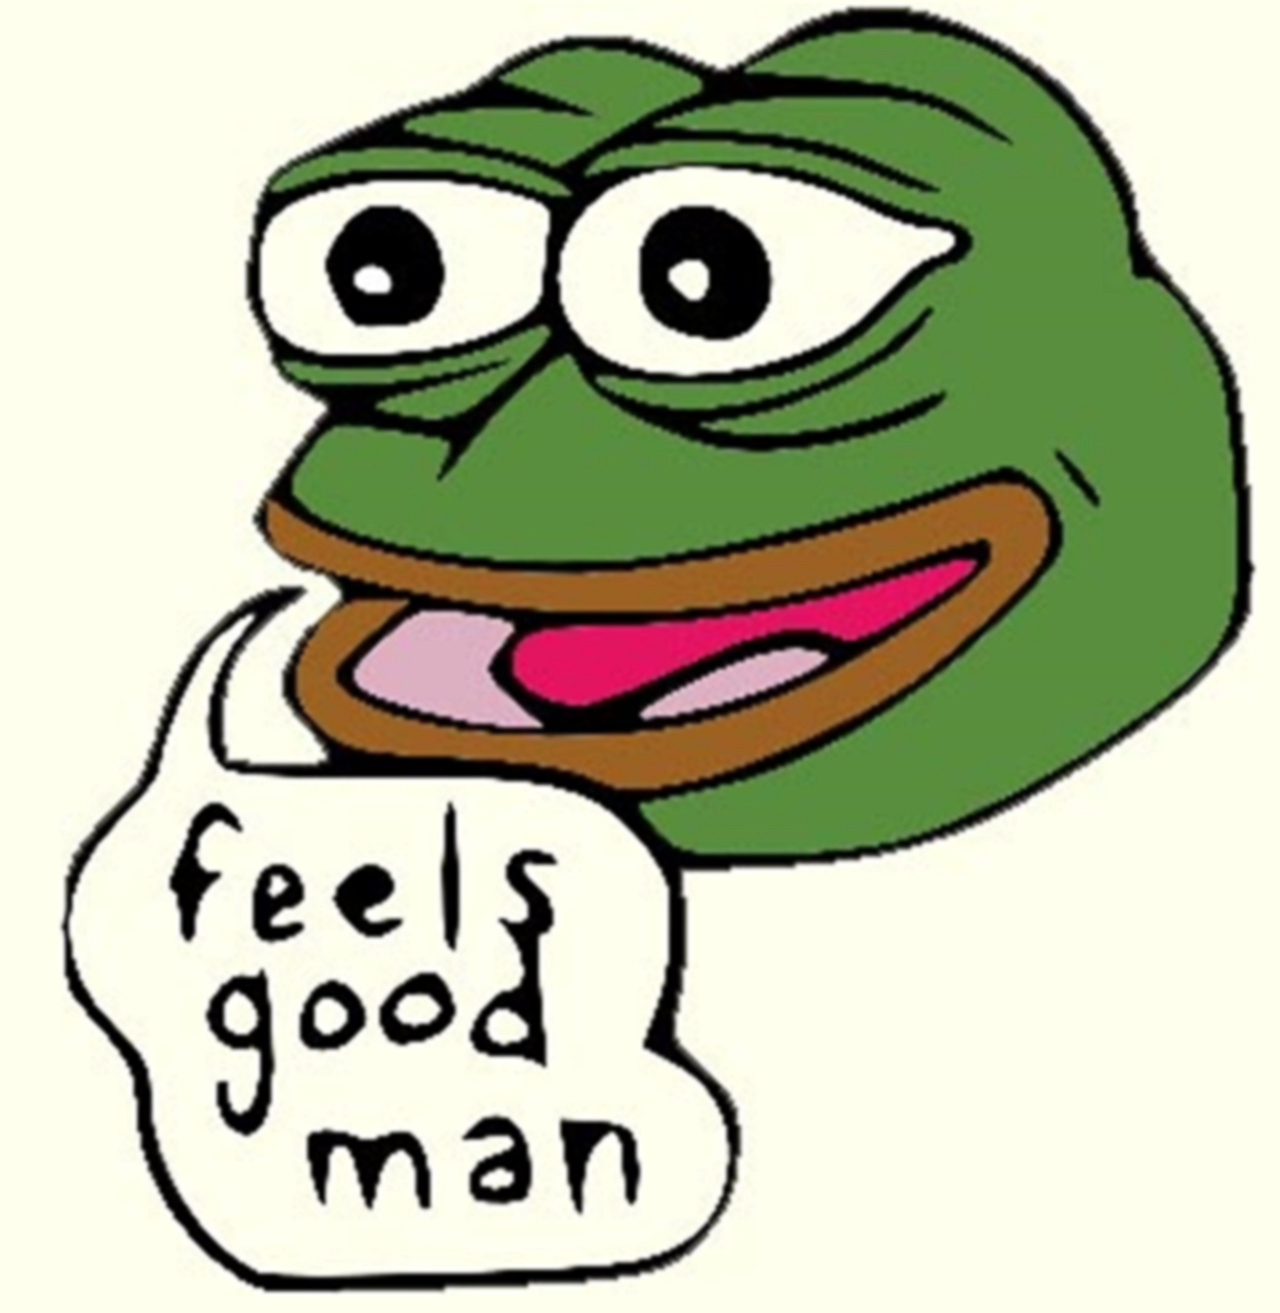 How Pepe the Frog went from harmless to hate symbol Los